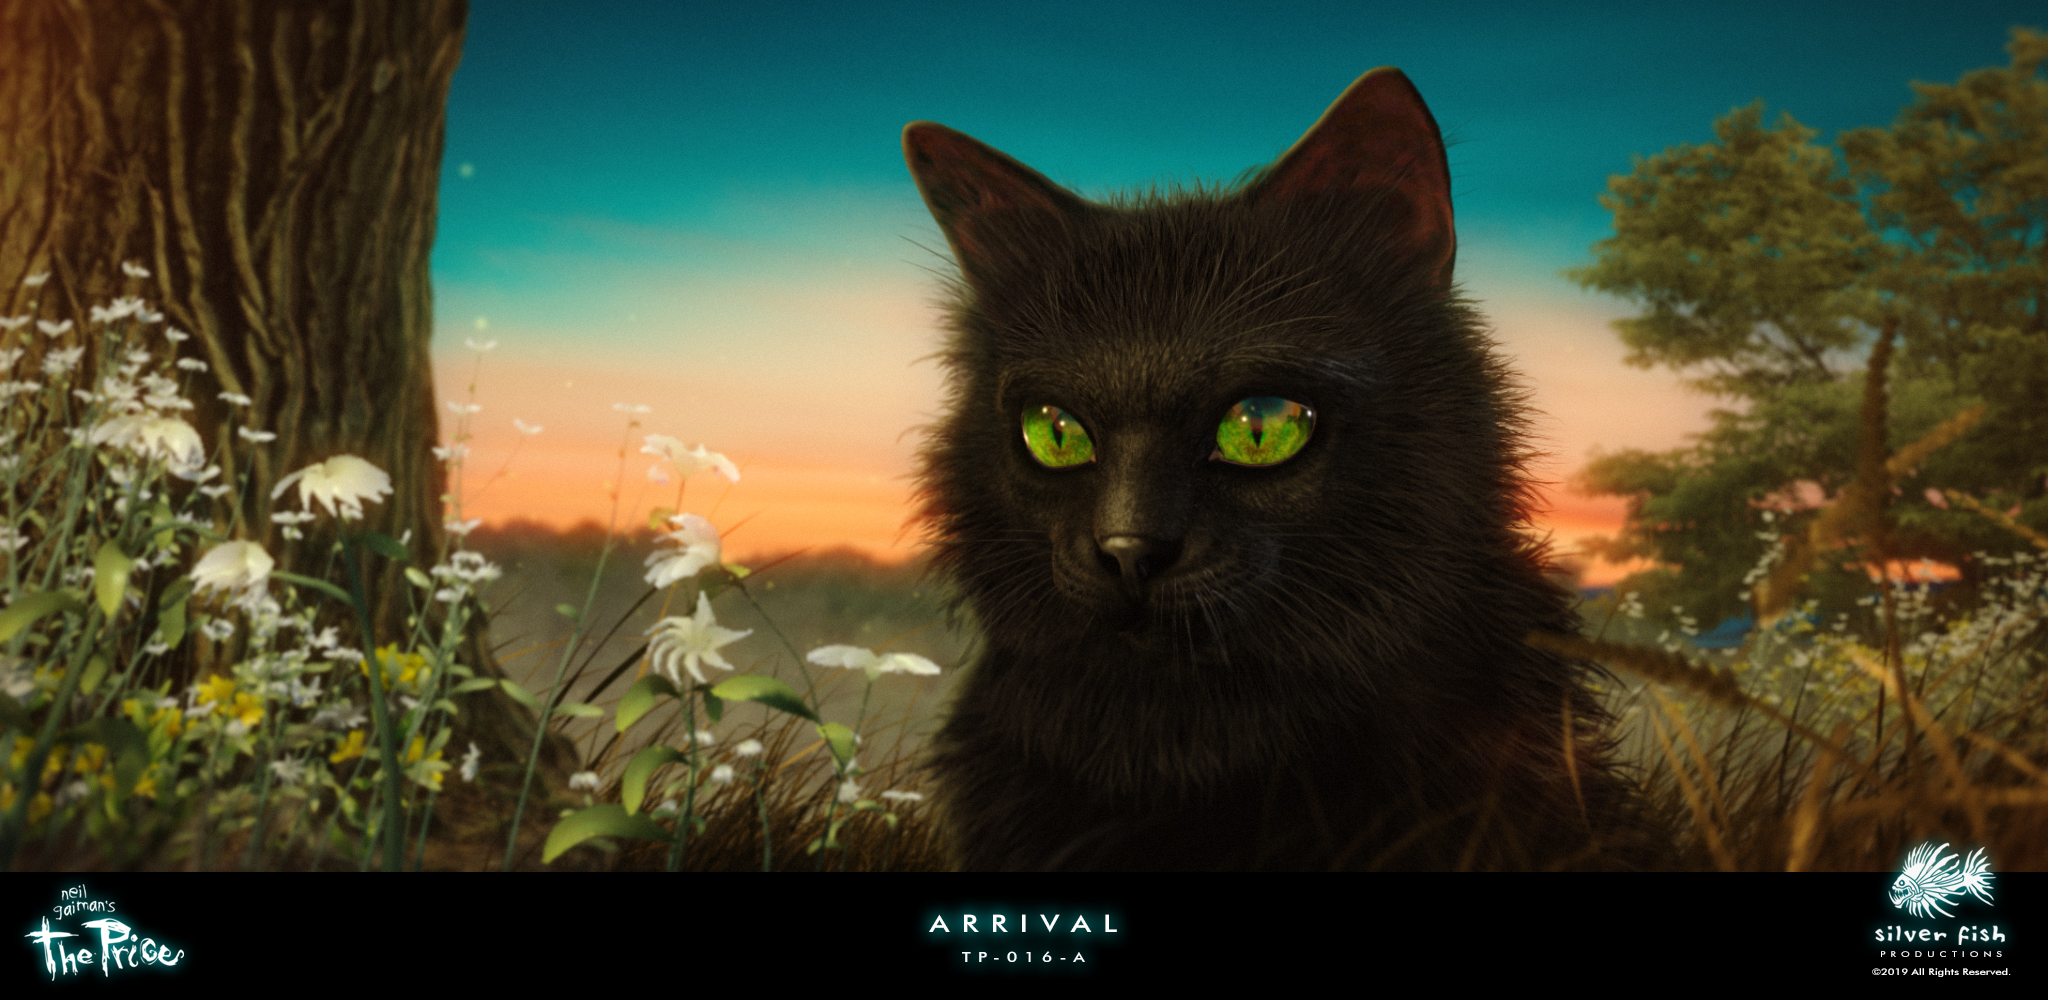 TP-016-A_Arrival_01